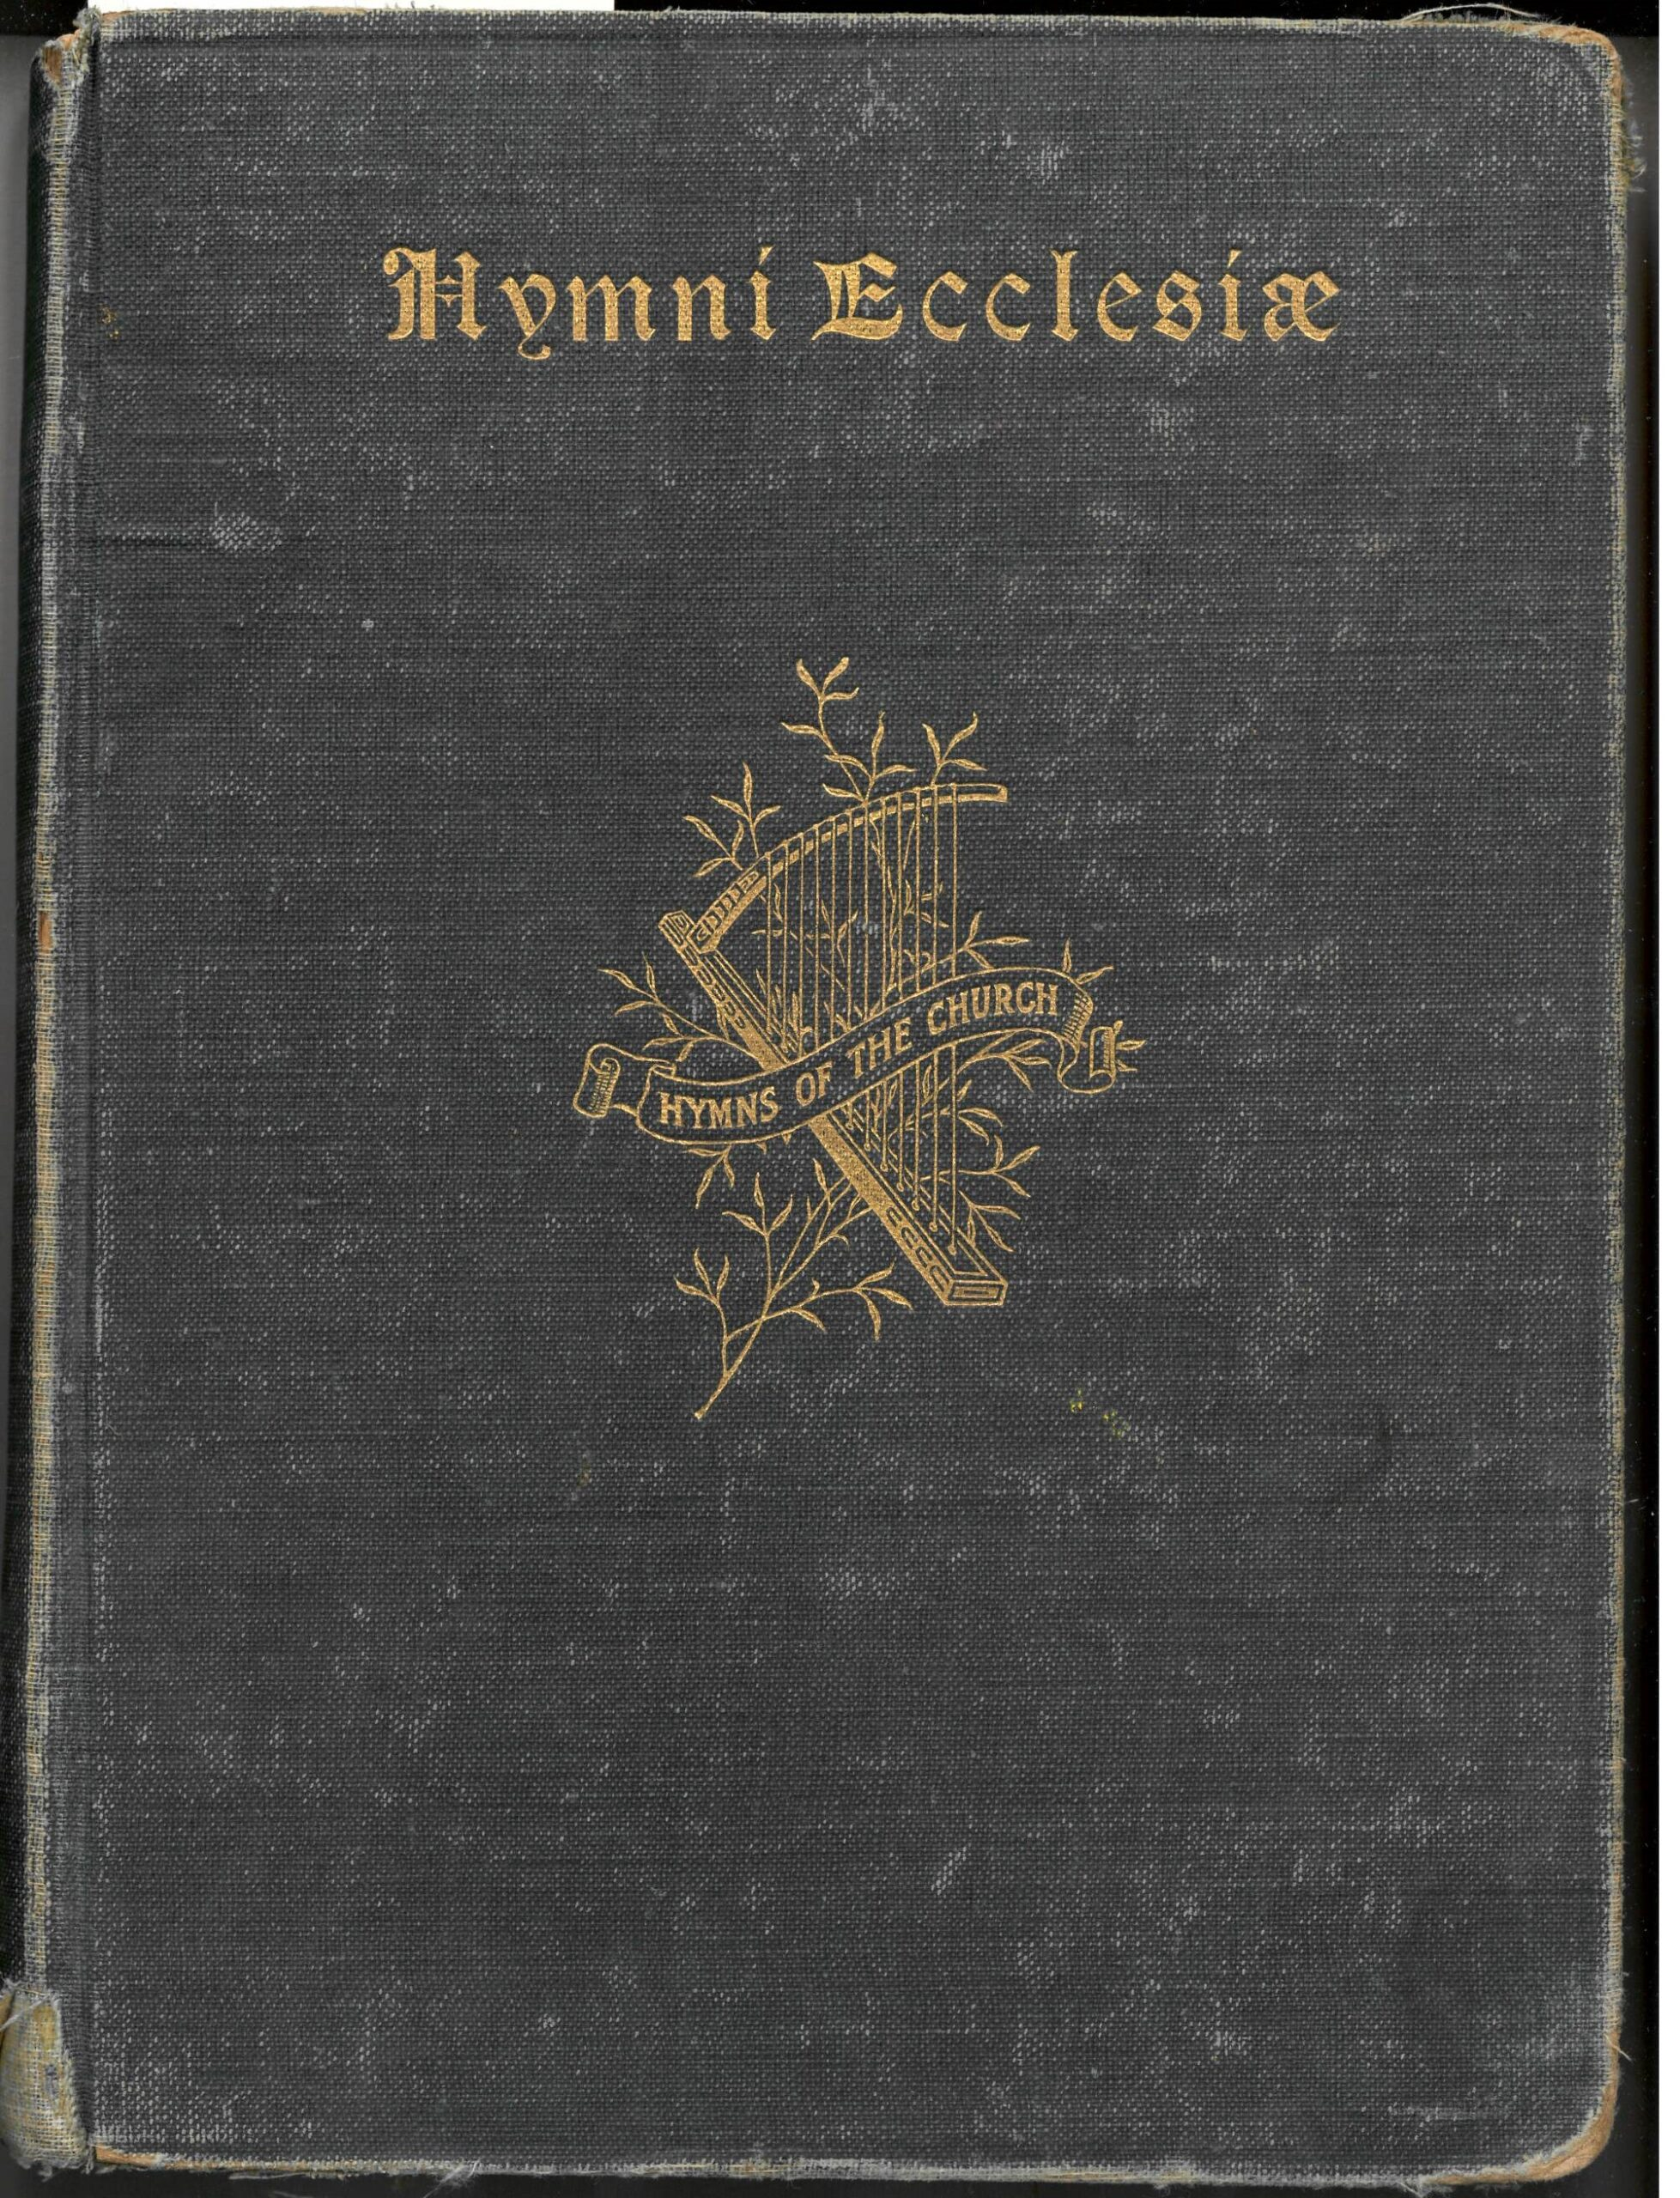 Hymni Ecclesiae, or Hymns of the Church. W. E. M. Hackleman and E. O. Excell, Compilers. Hackleman Music Company: Indianapolis, 1911. Front cover. ACU copy lacks the title page.